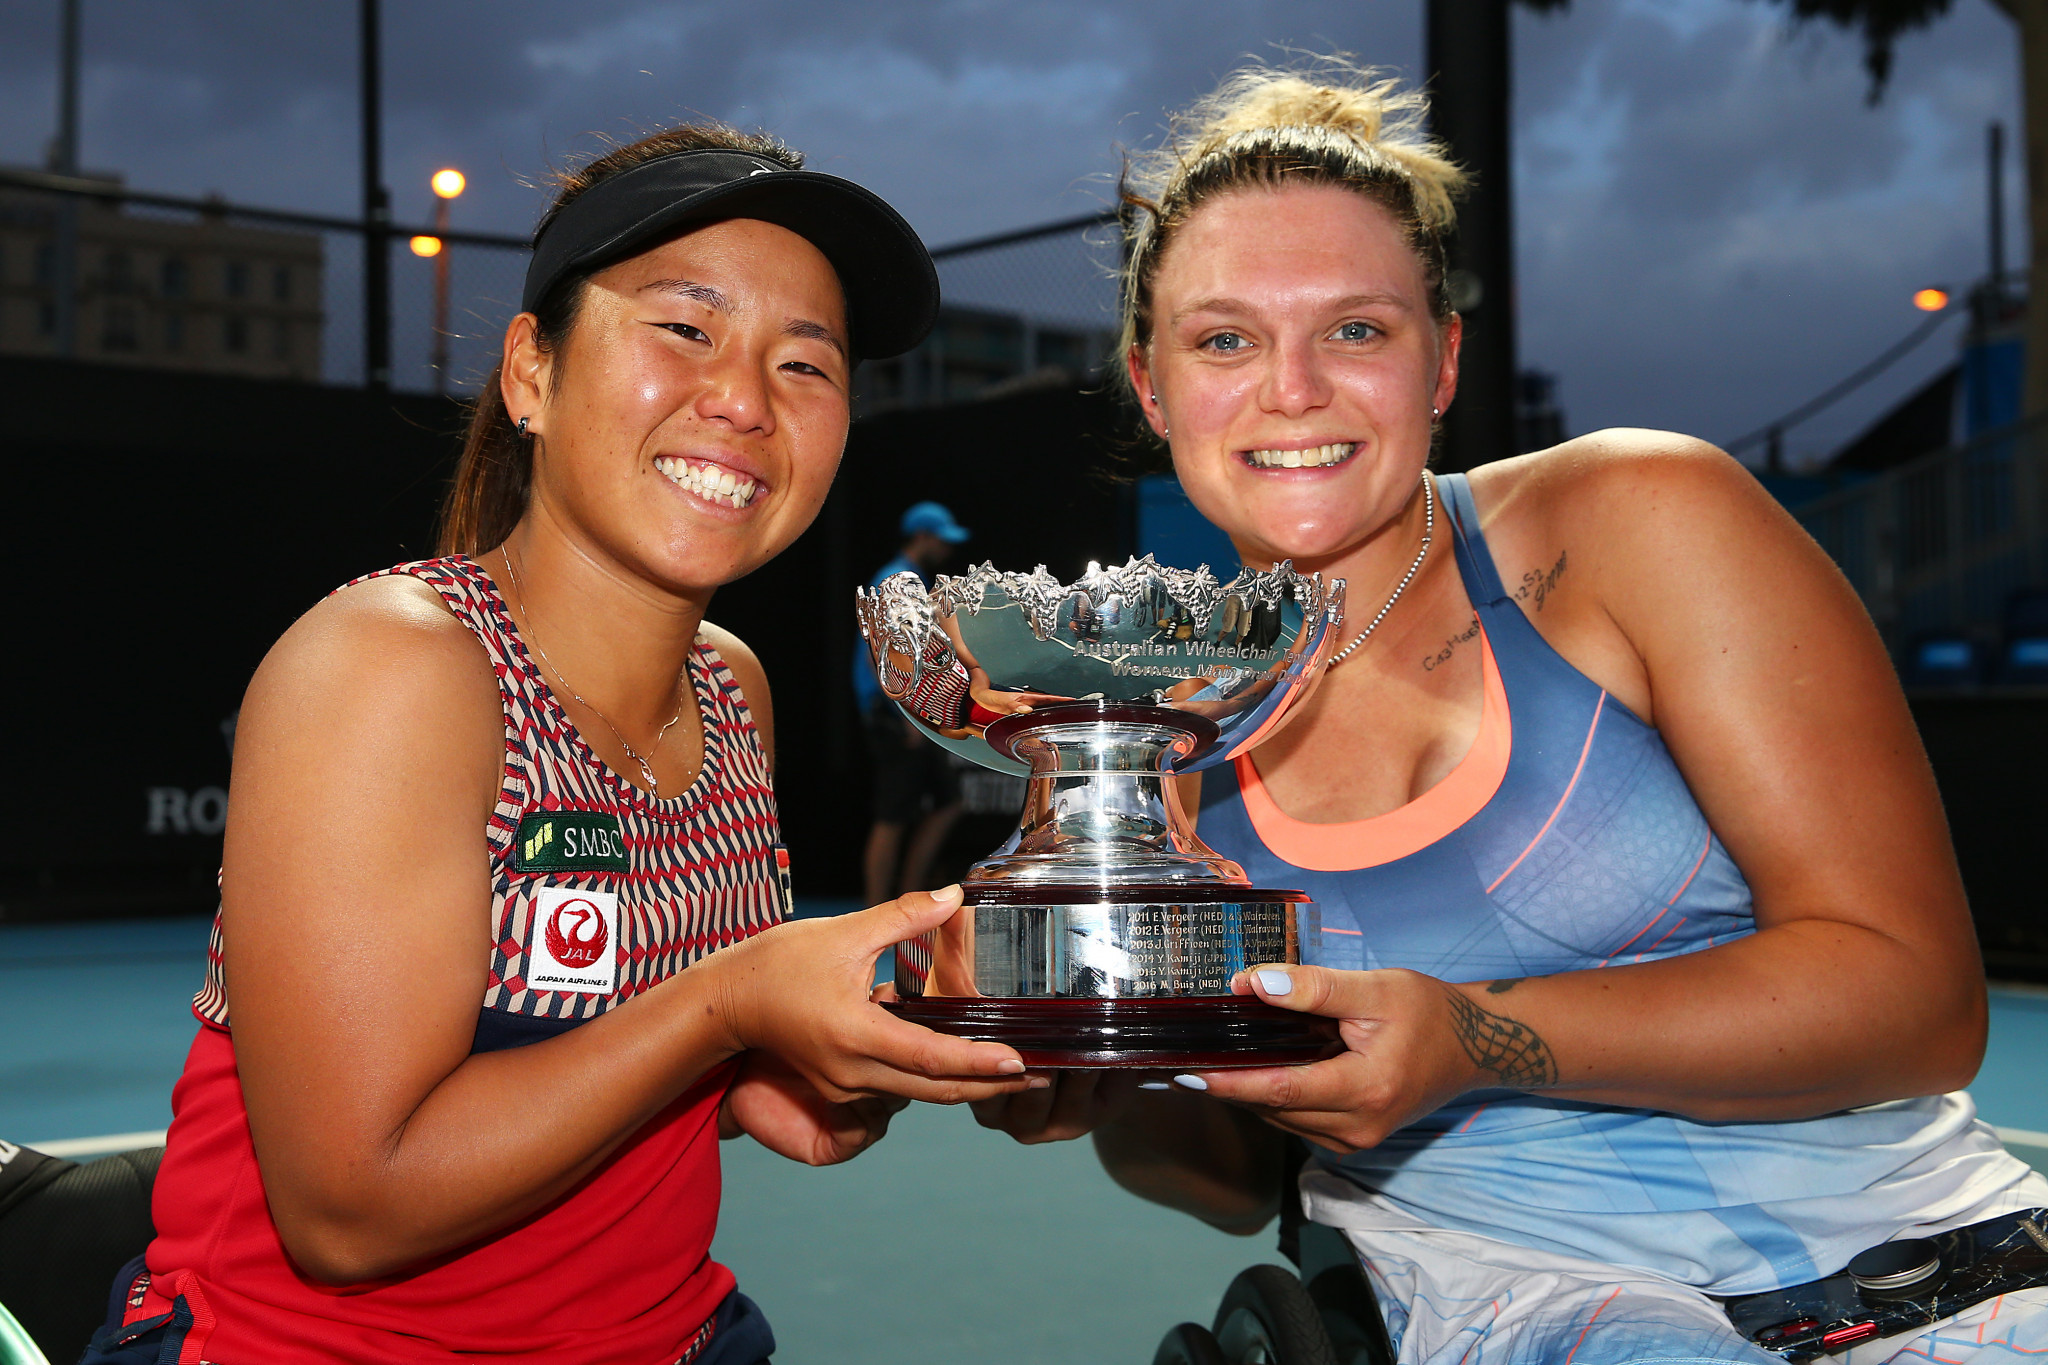 Whiley started 2020 well with an Australian Open doubles win with Japan's Yui Kamiji ©Getty Images